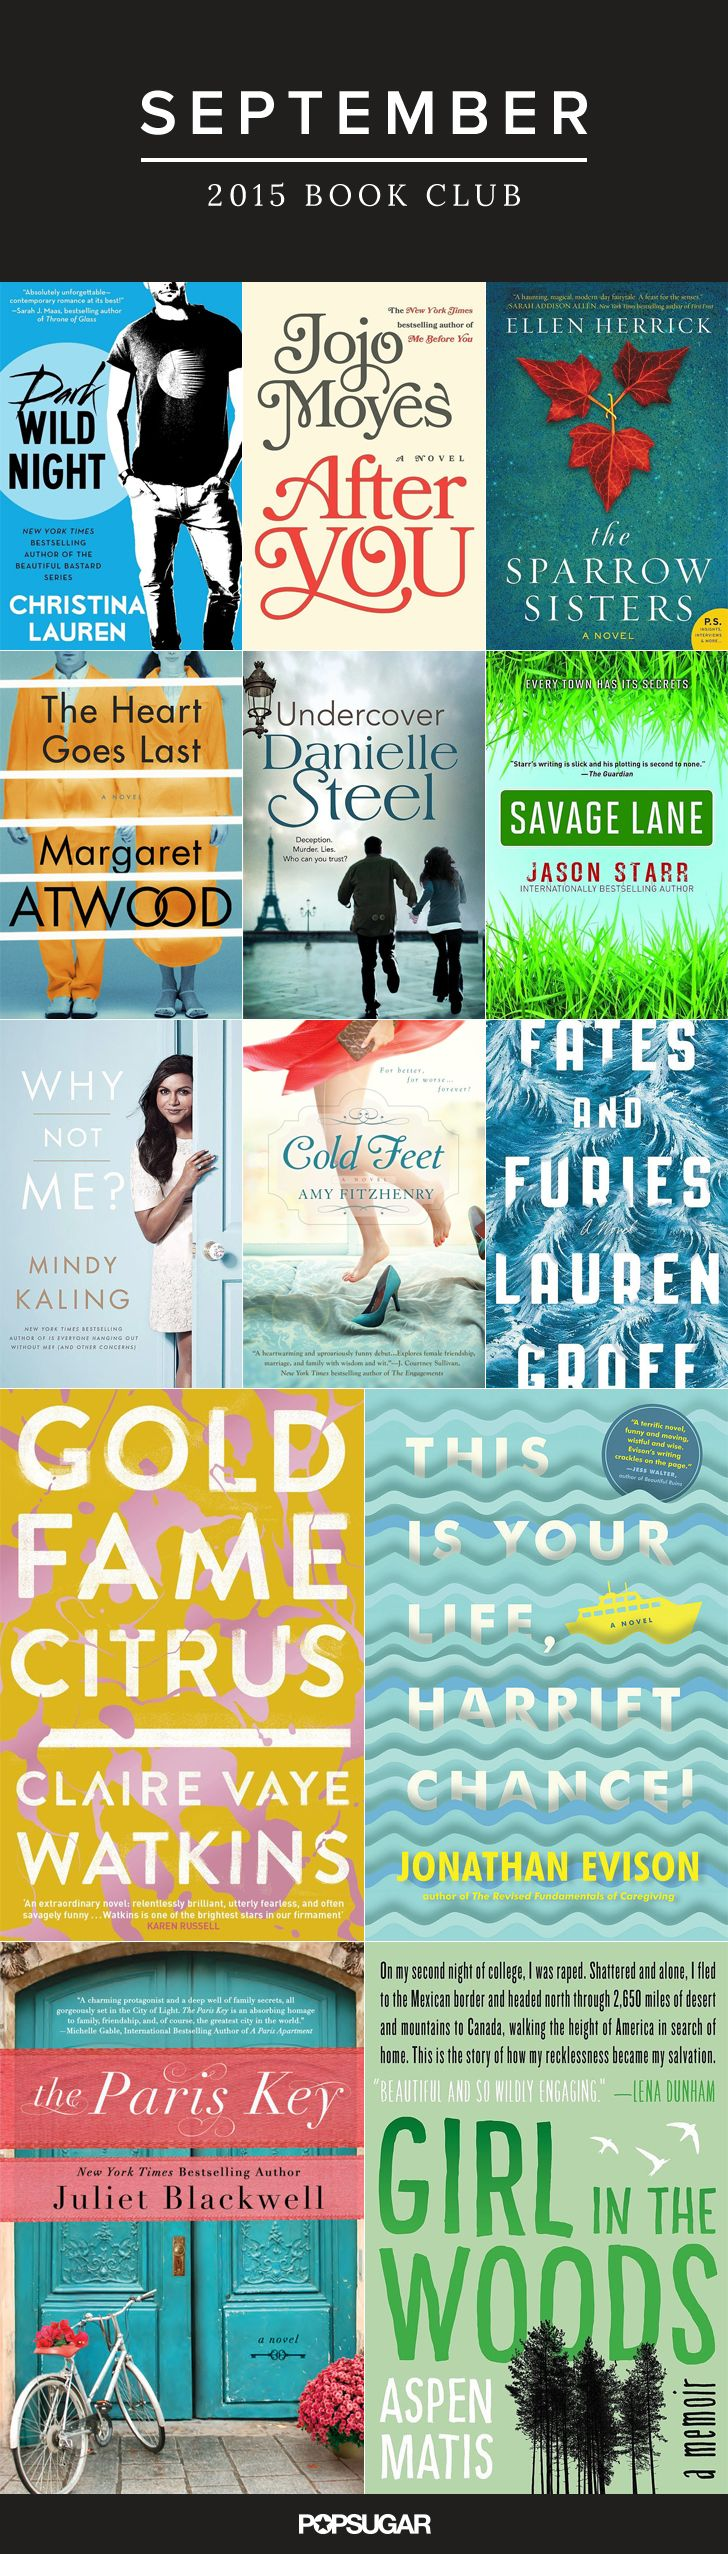 13 September Reads That Will Fit Your Every Mood